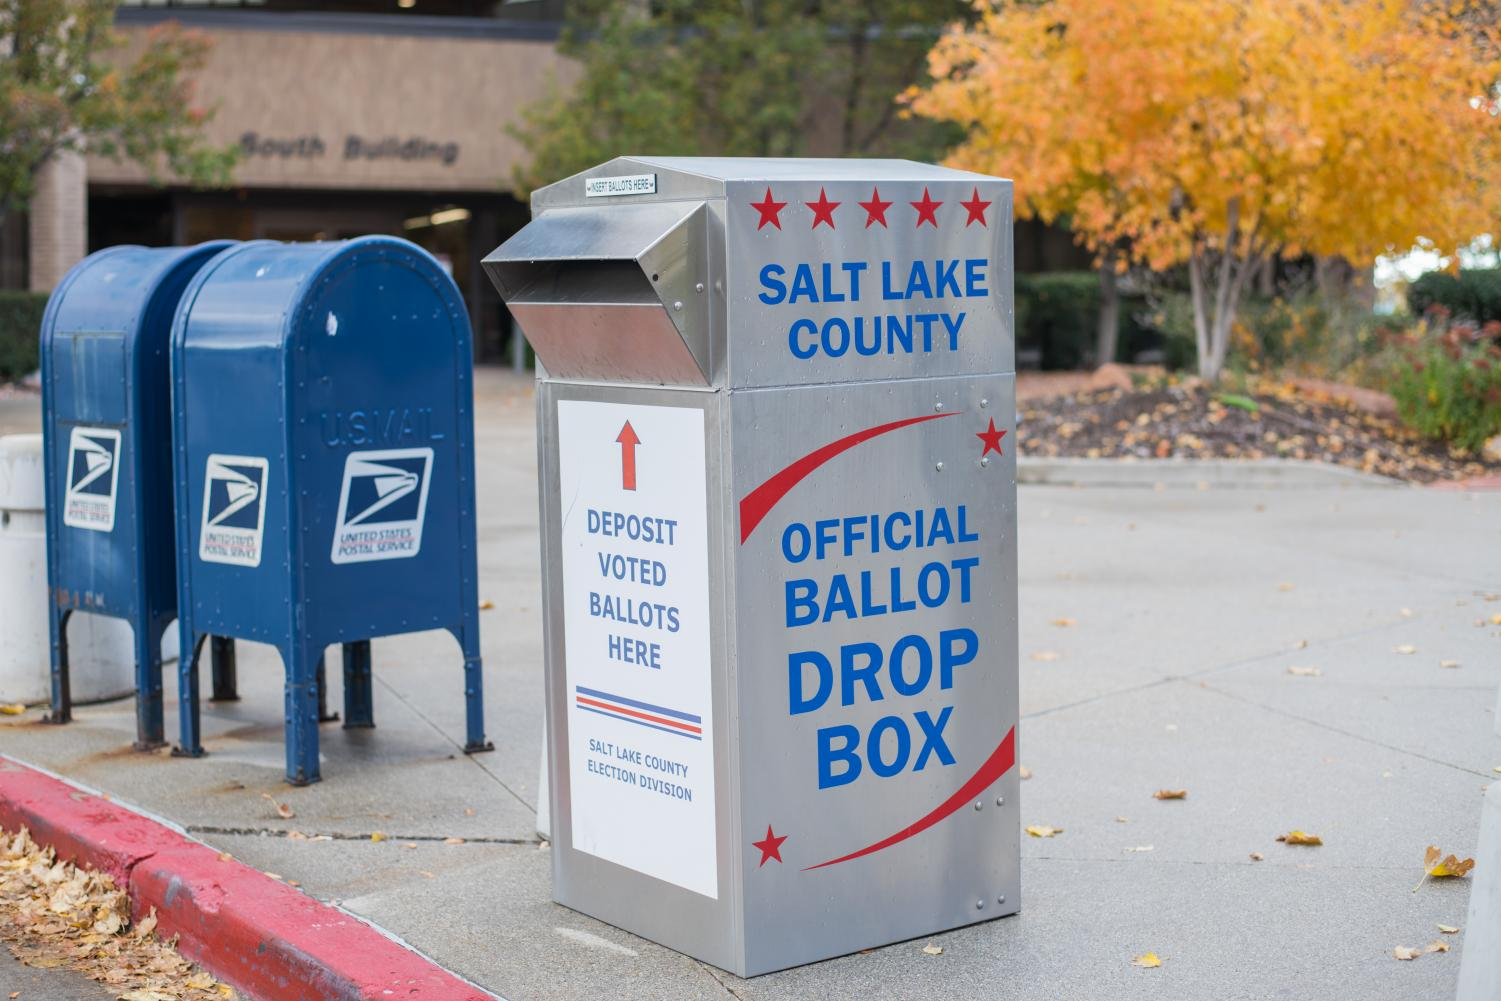 An Official Ballot Drop Box for the Midterm Elections 2018 at the Salt Lake County Building in Salt Lake City on Tuesday, Oct. 23, 2018. (Photo by Curtis Lin | Daily Utah Chronicle)